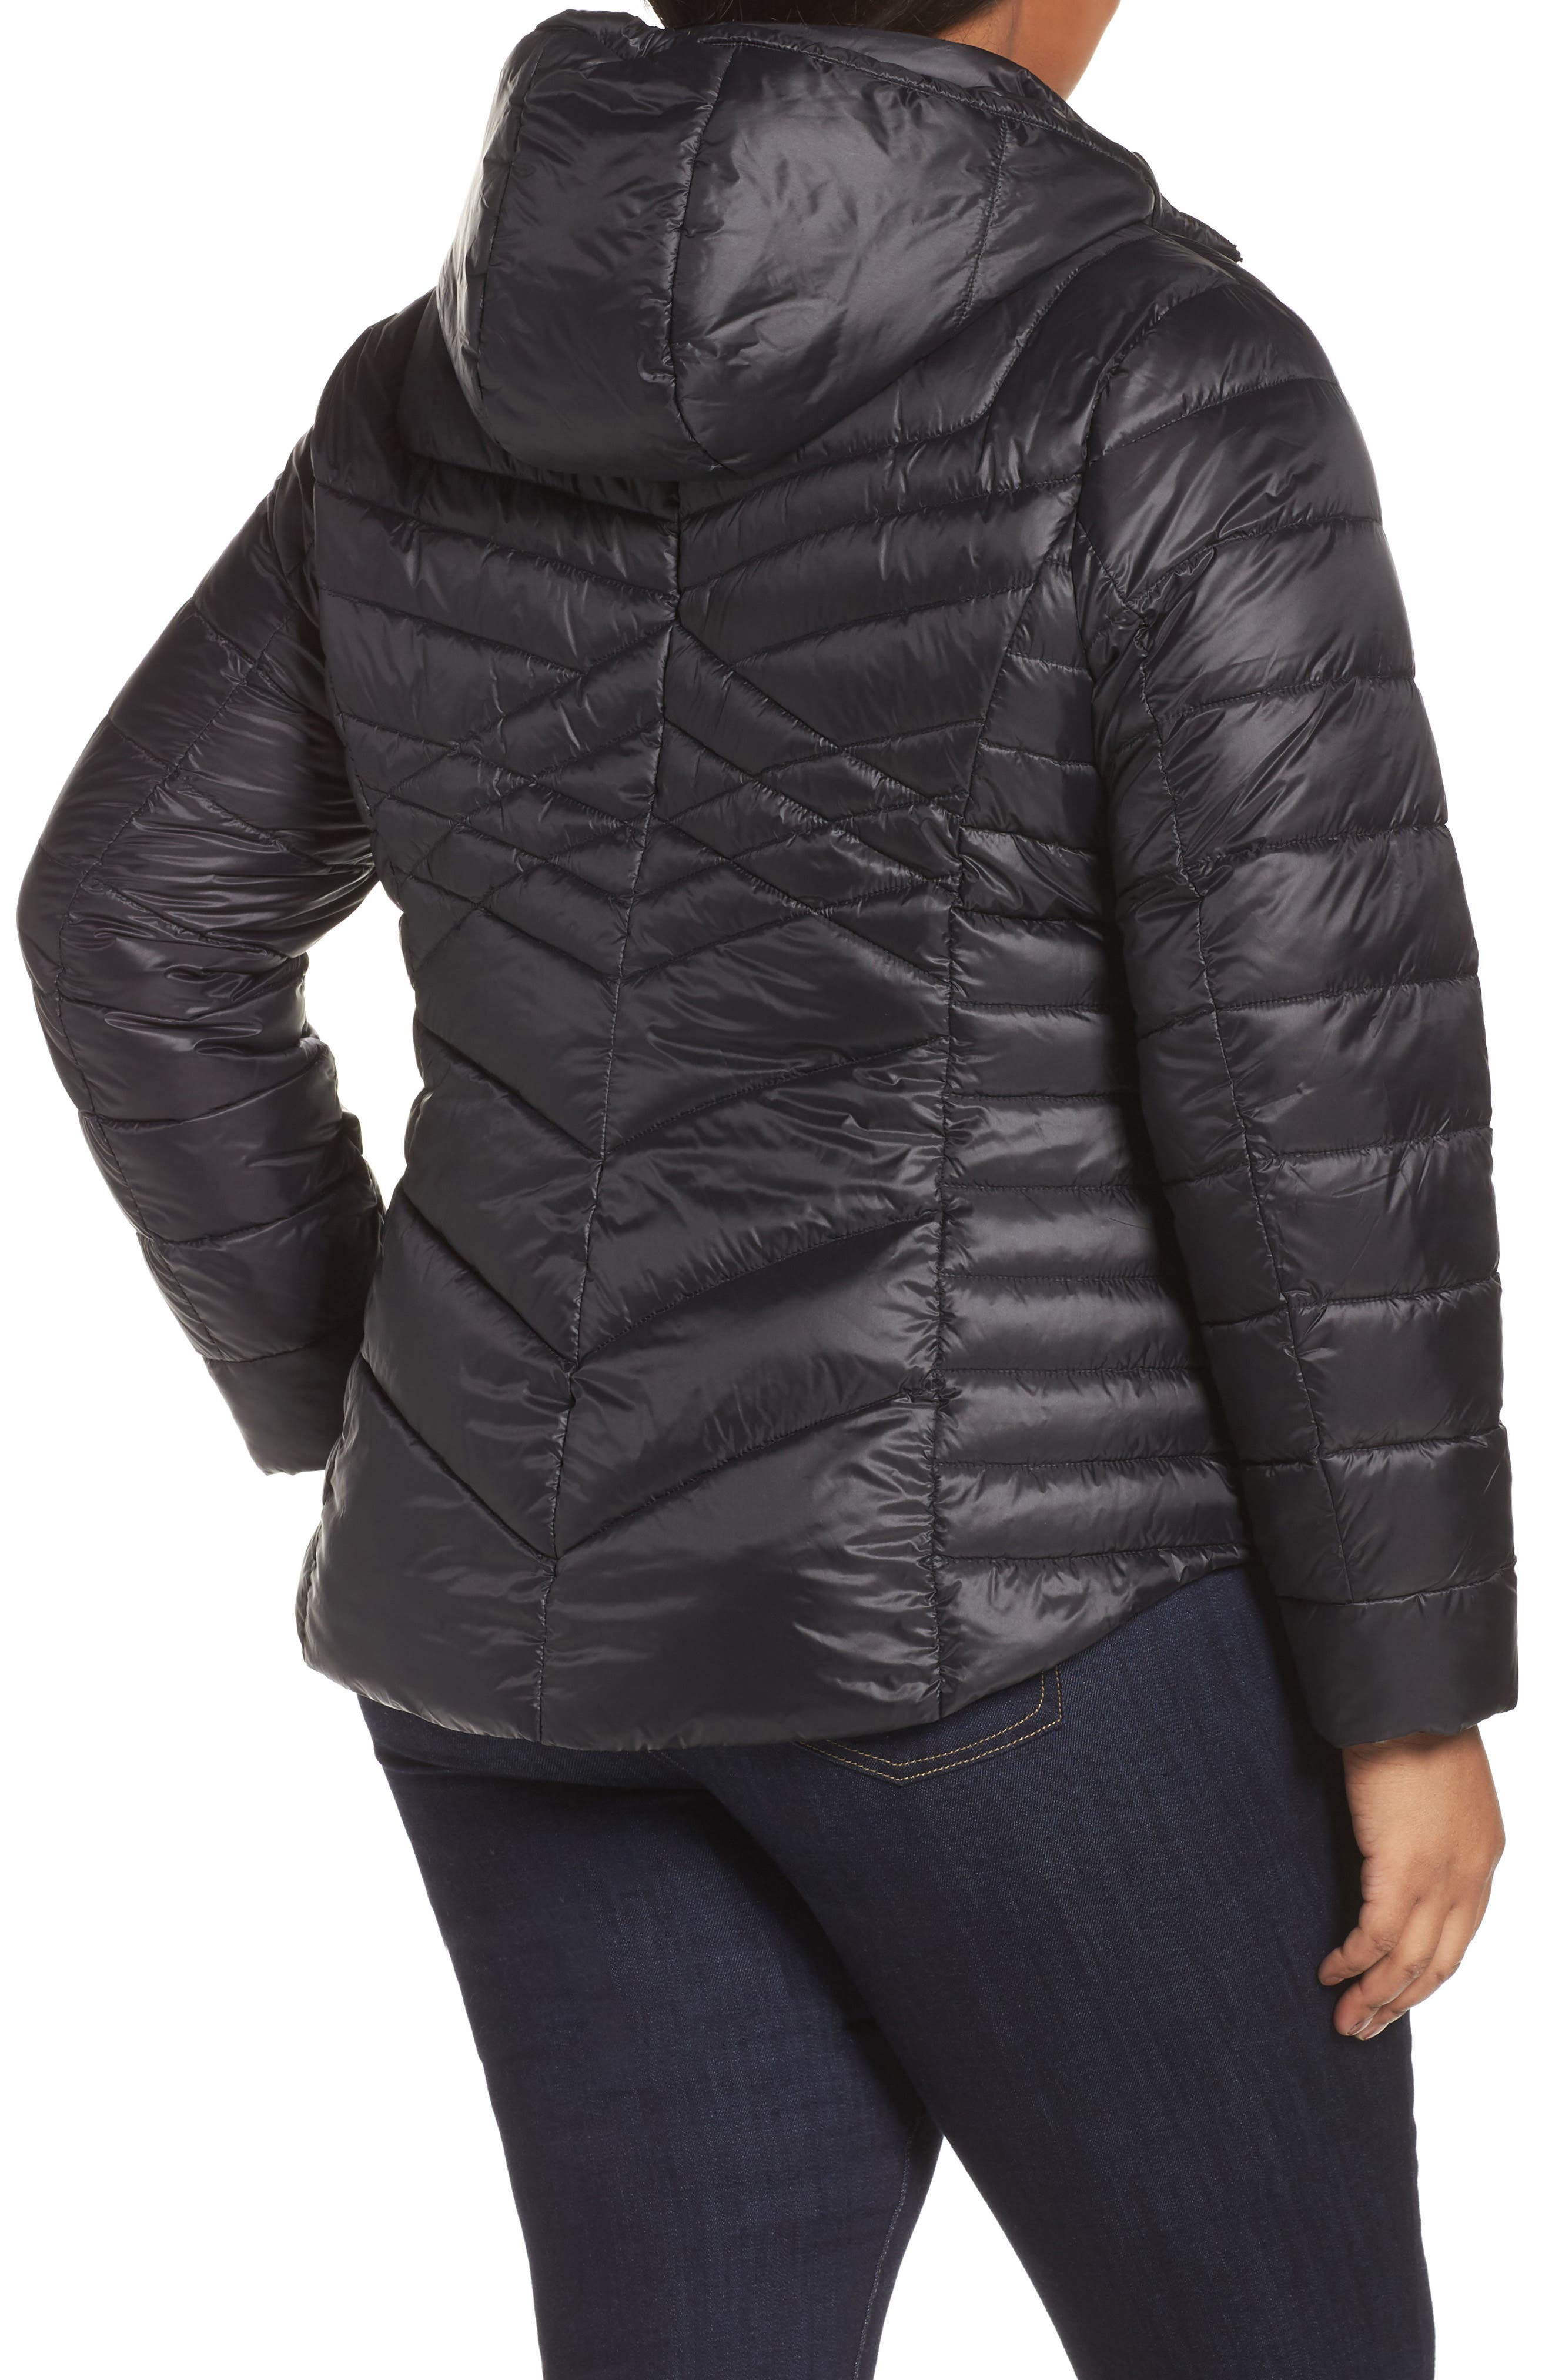 Hooded Down Blend Puffer Jacket,                             Alternate thumbnail 2, color,                             001